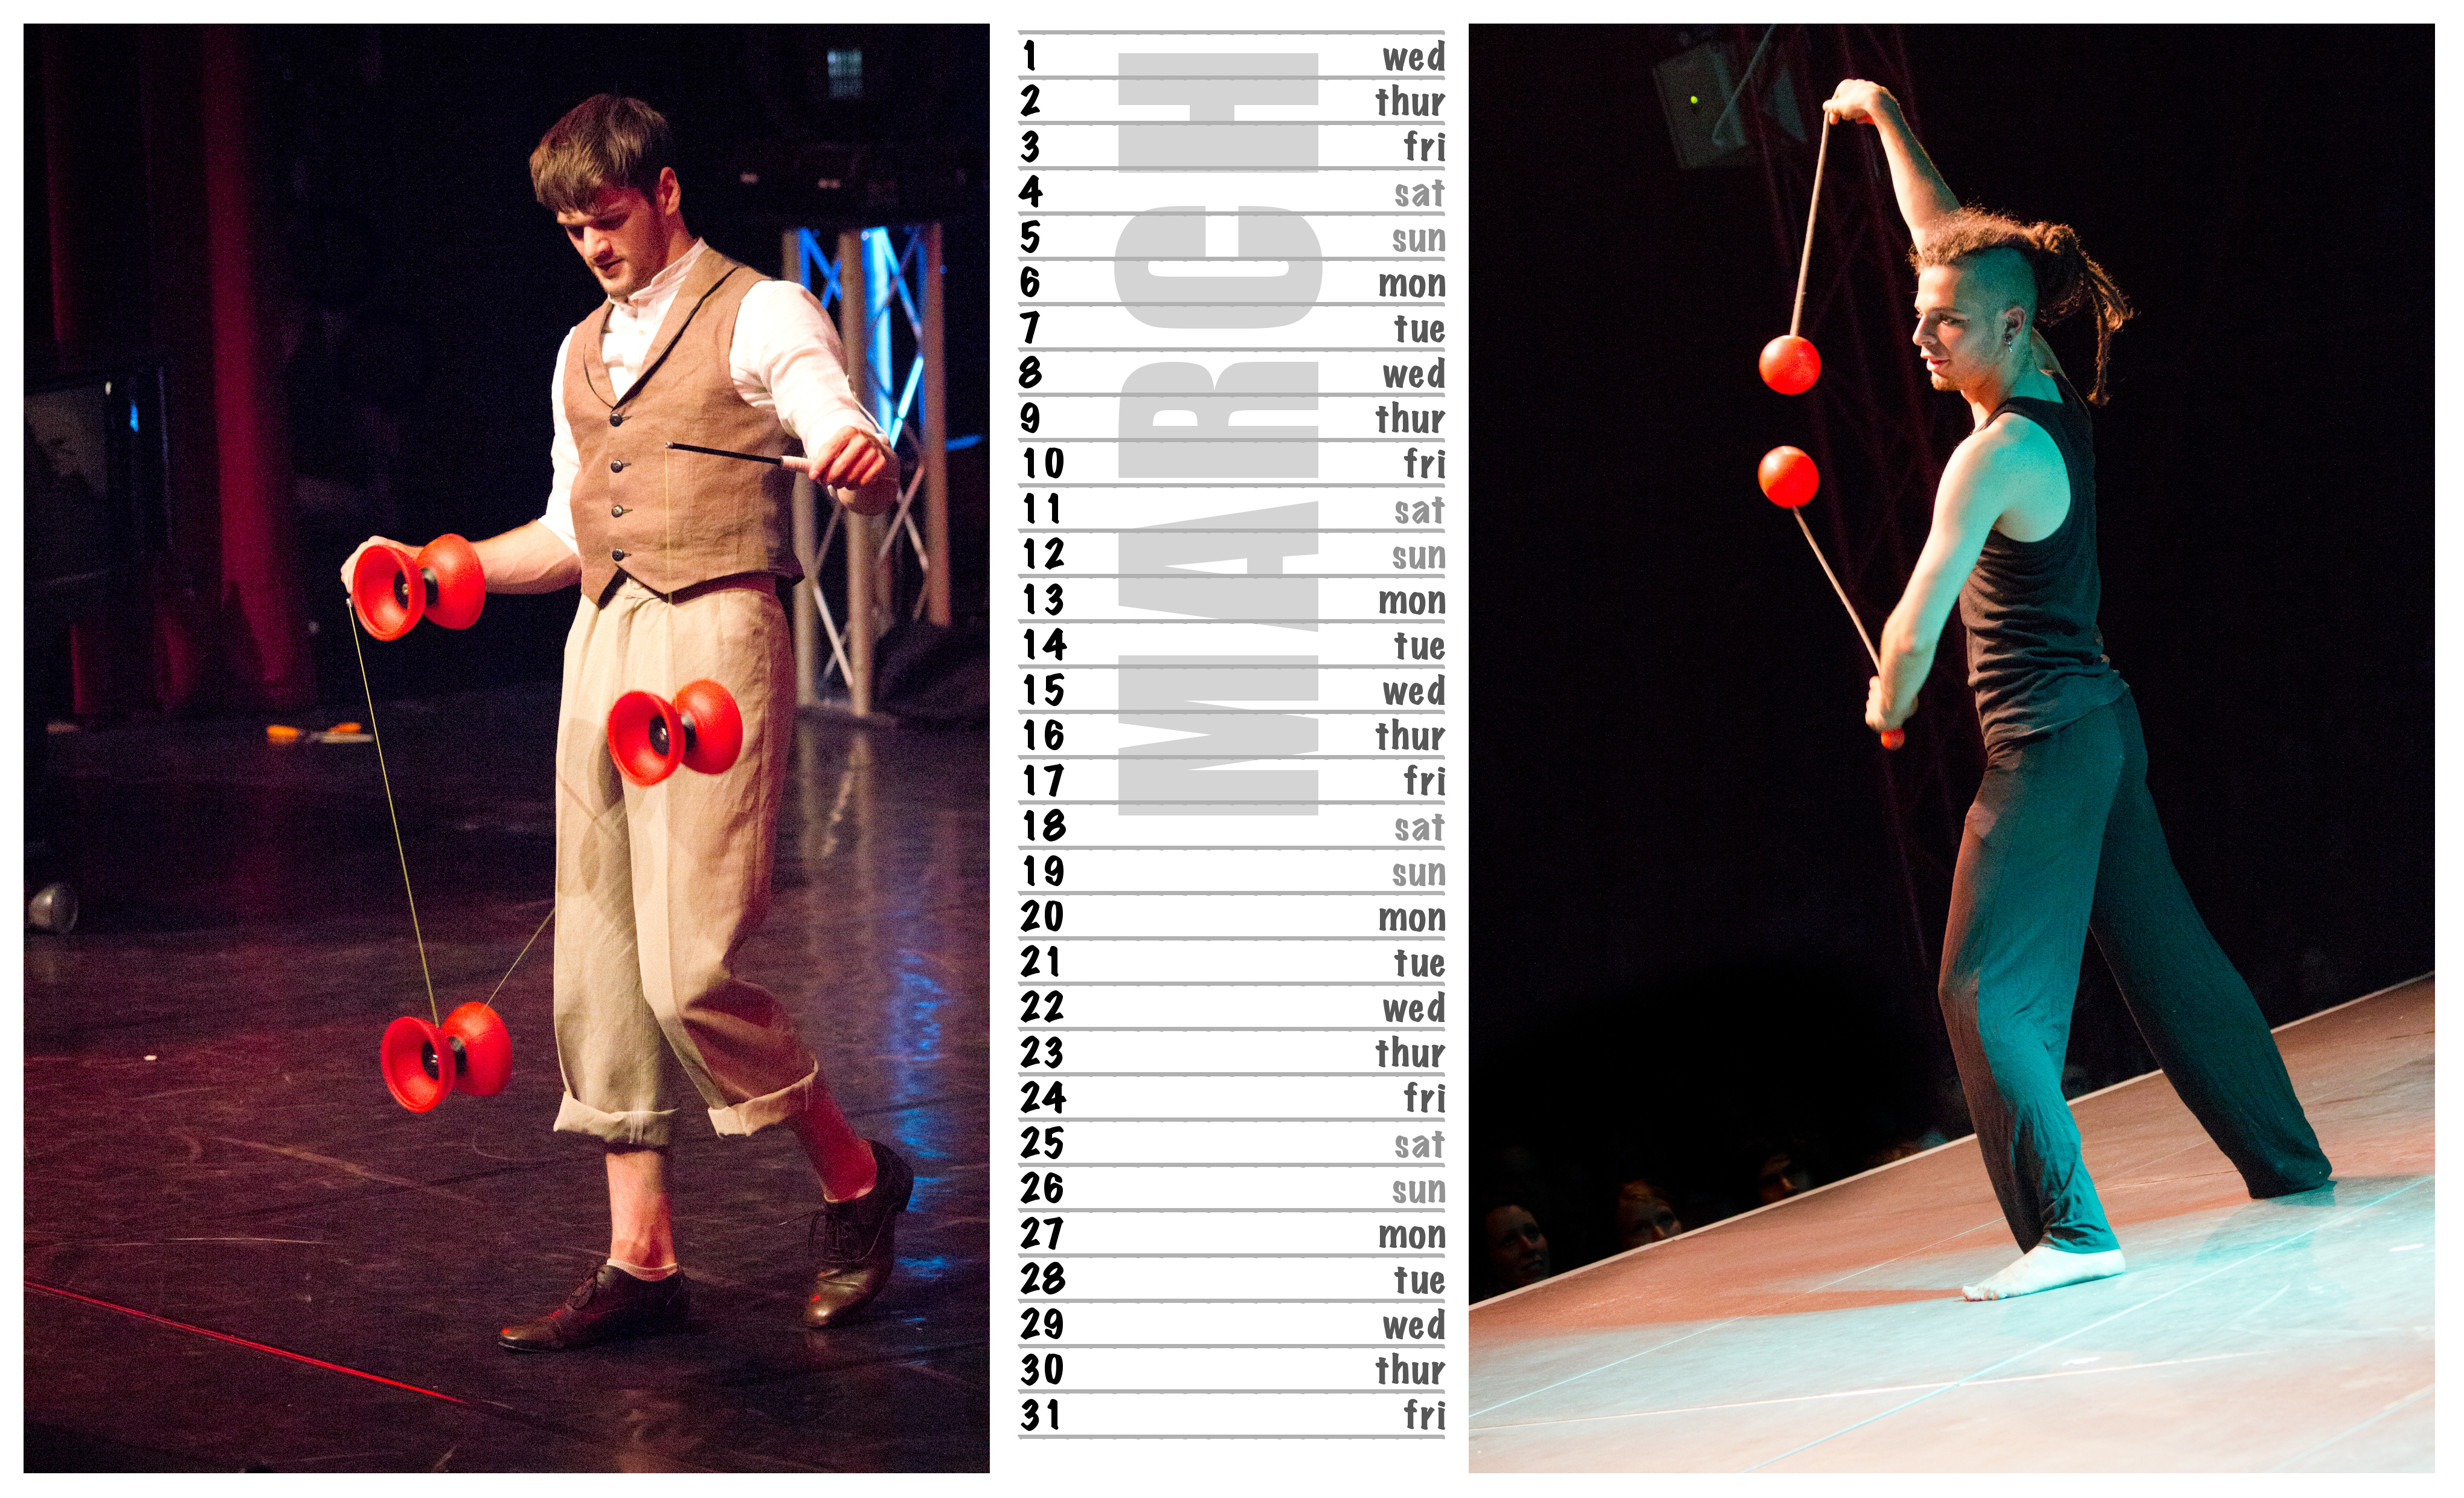 Jugglers' Calendar 2012 photos by Luke Burrage |